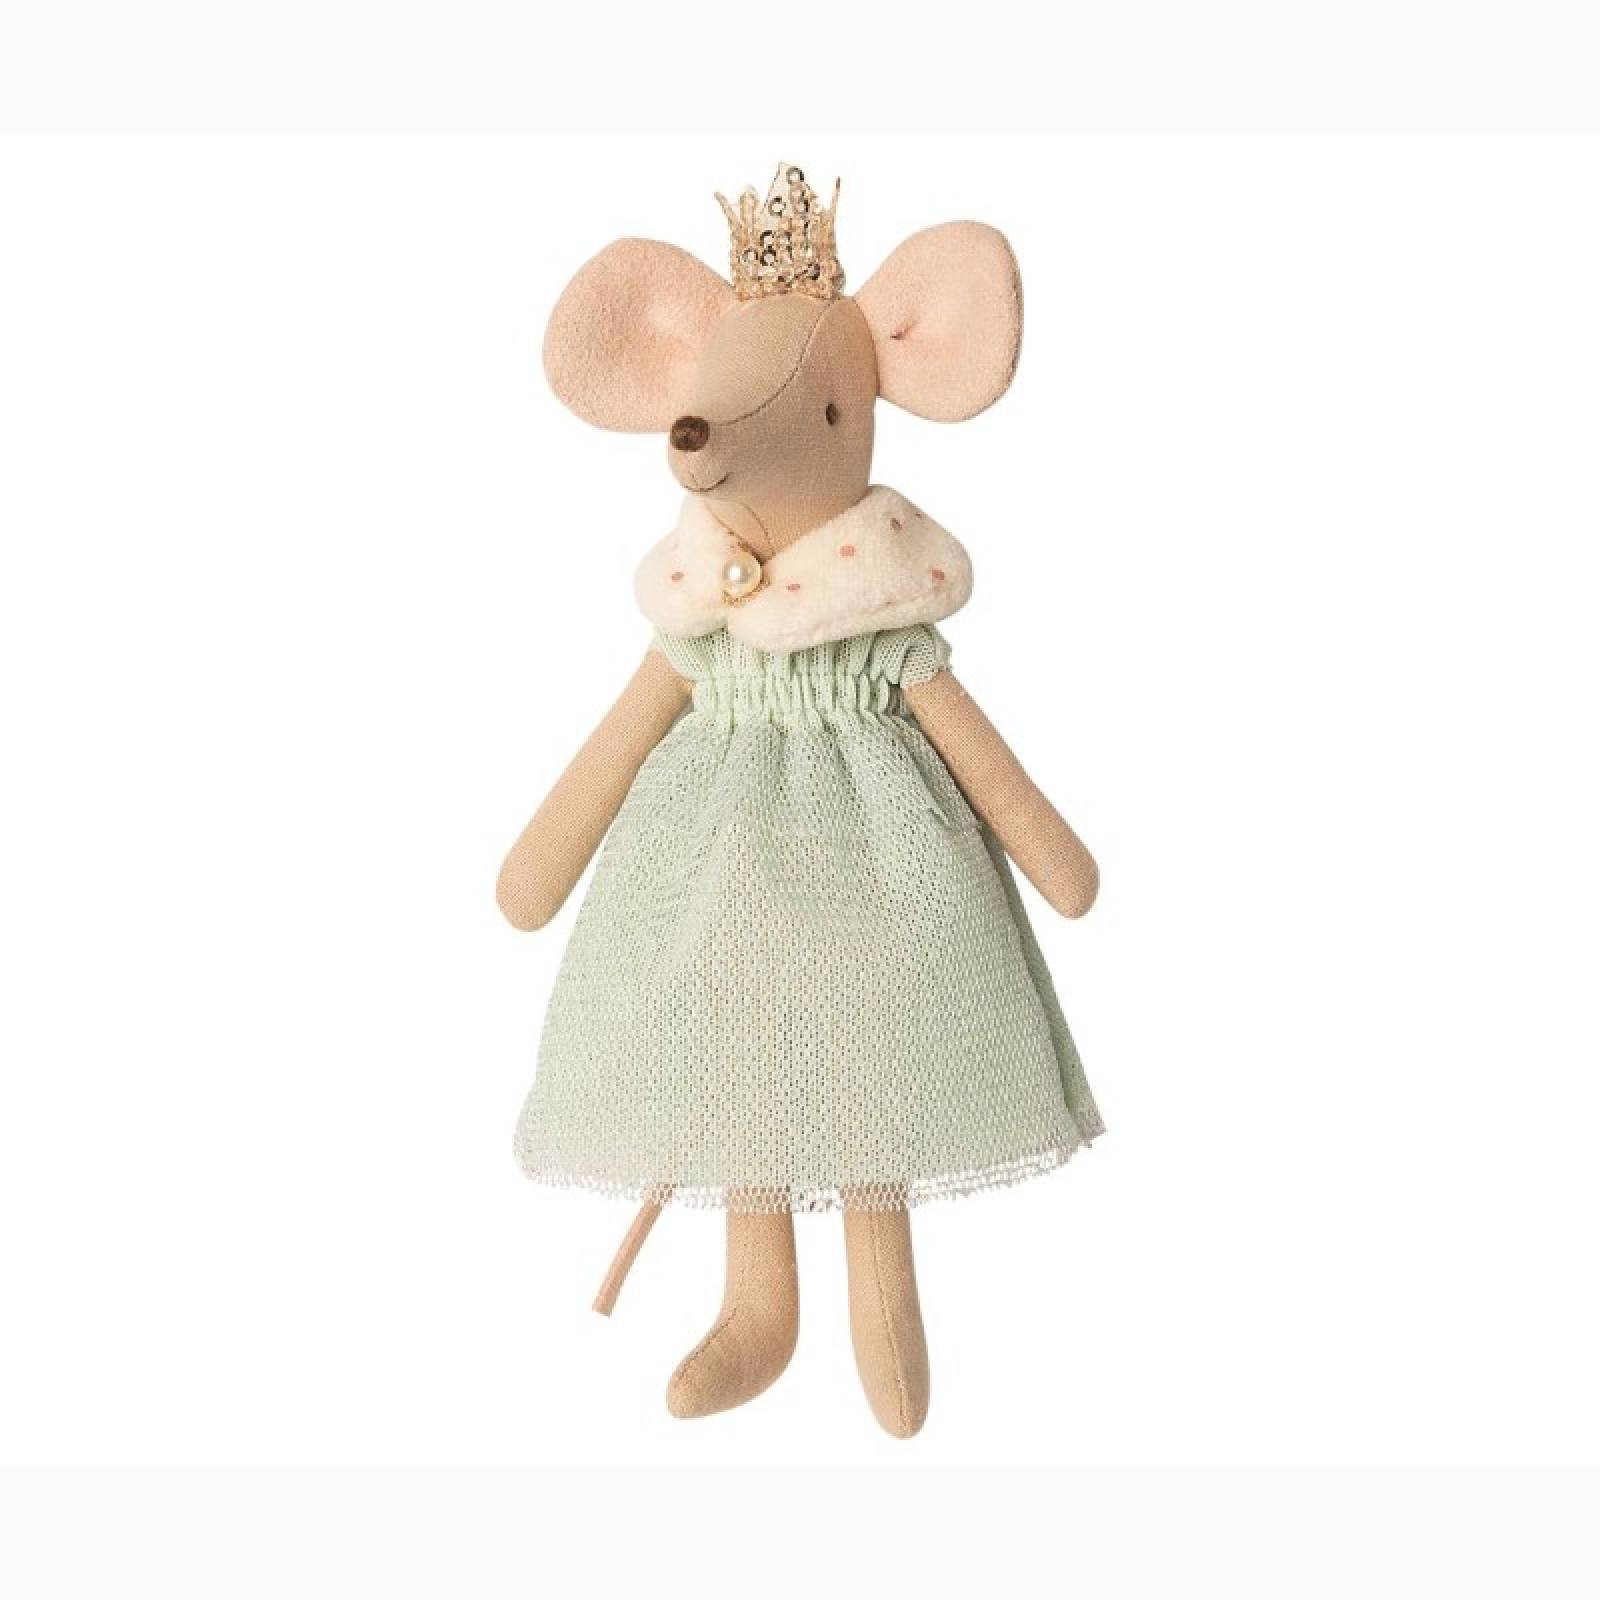 Queen Mouse Soft Toy By Maileg 3+